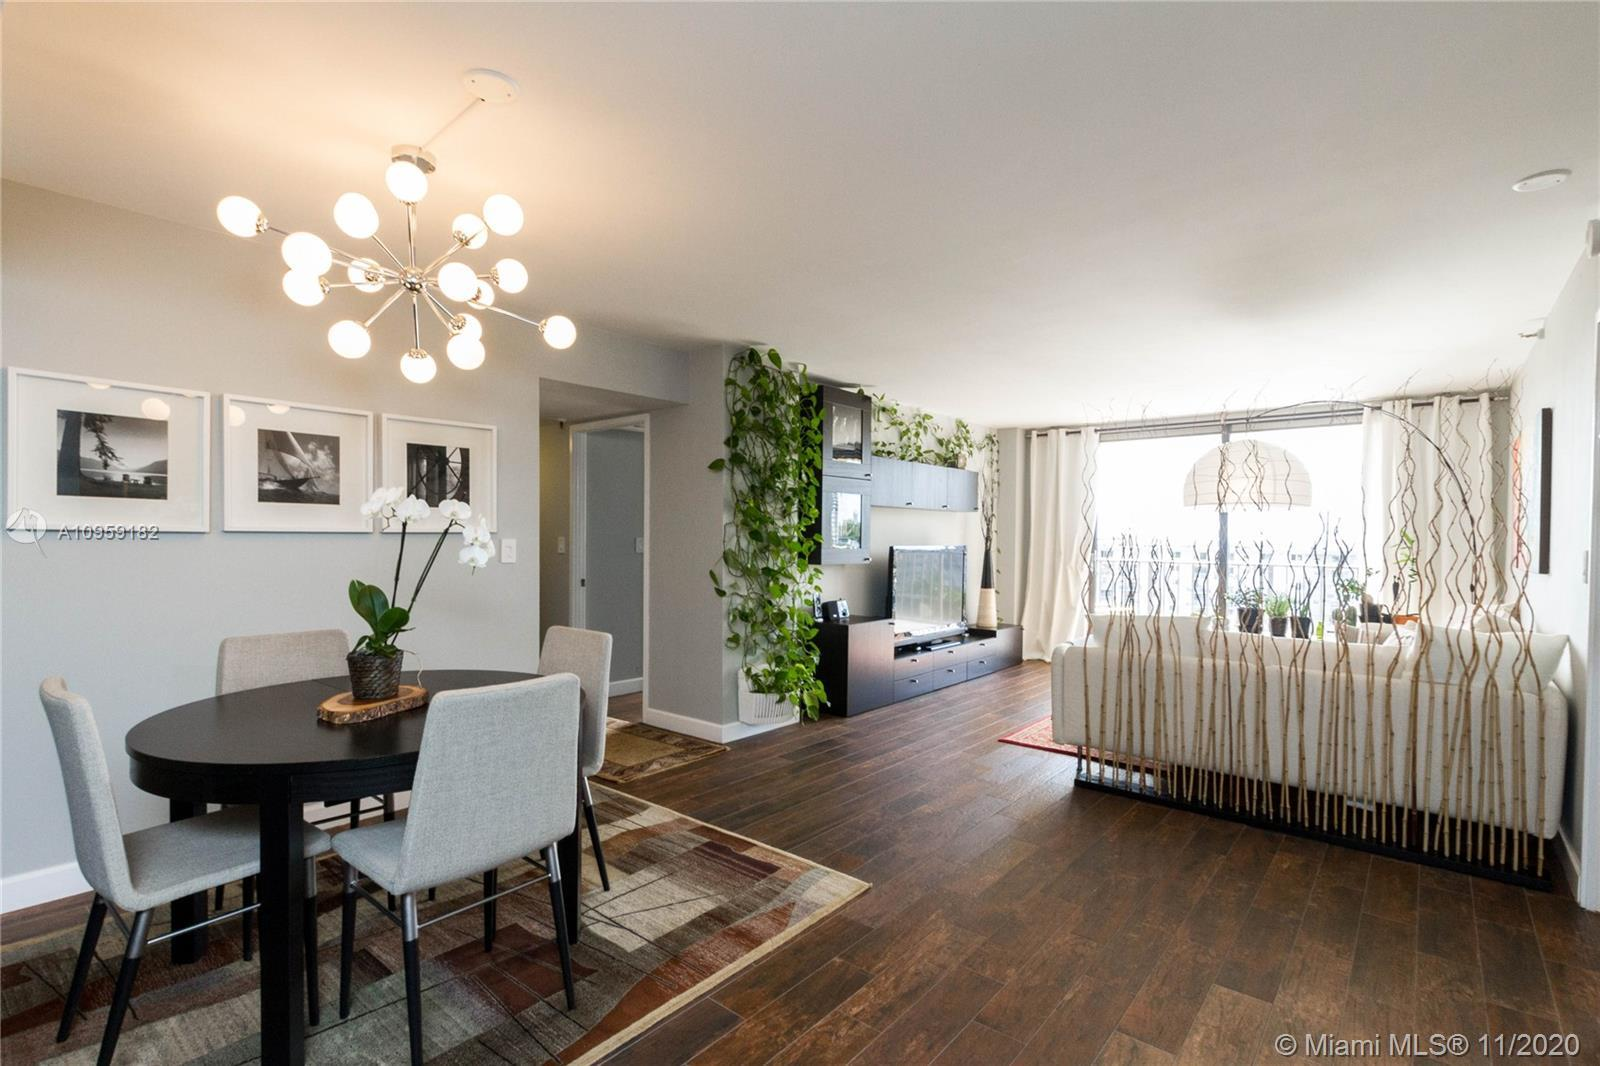 3-Bedroom / 2-Bathrooms, Remodeled to Perfection! This residence doesn't lack anything and masterful